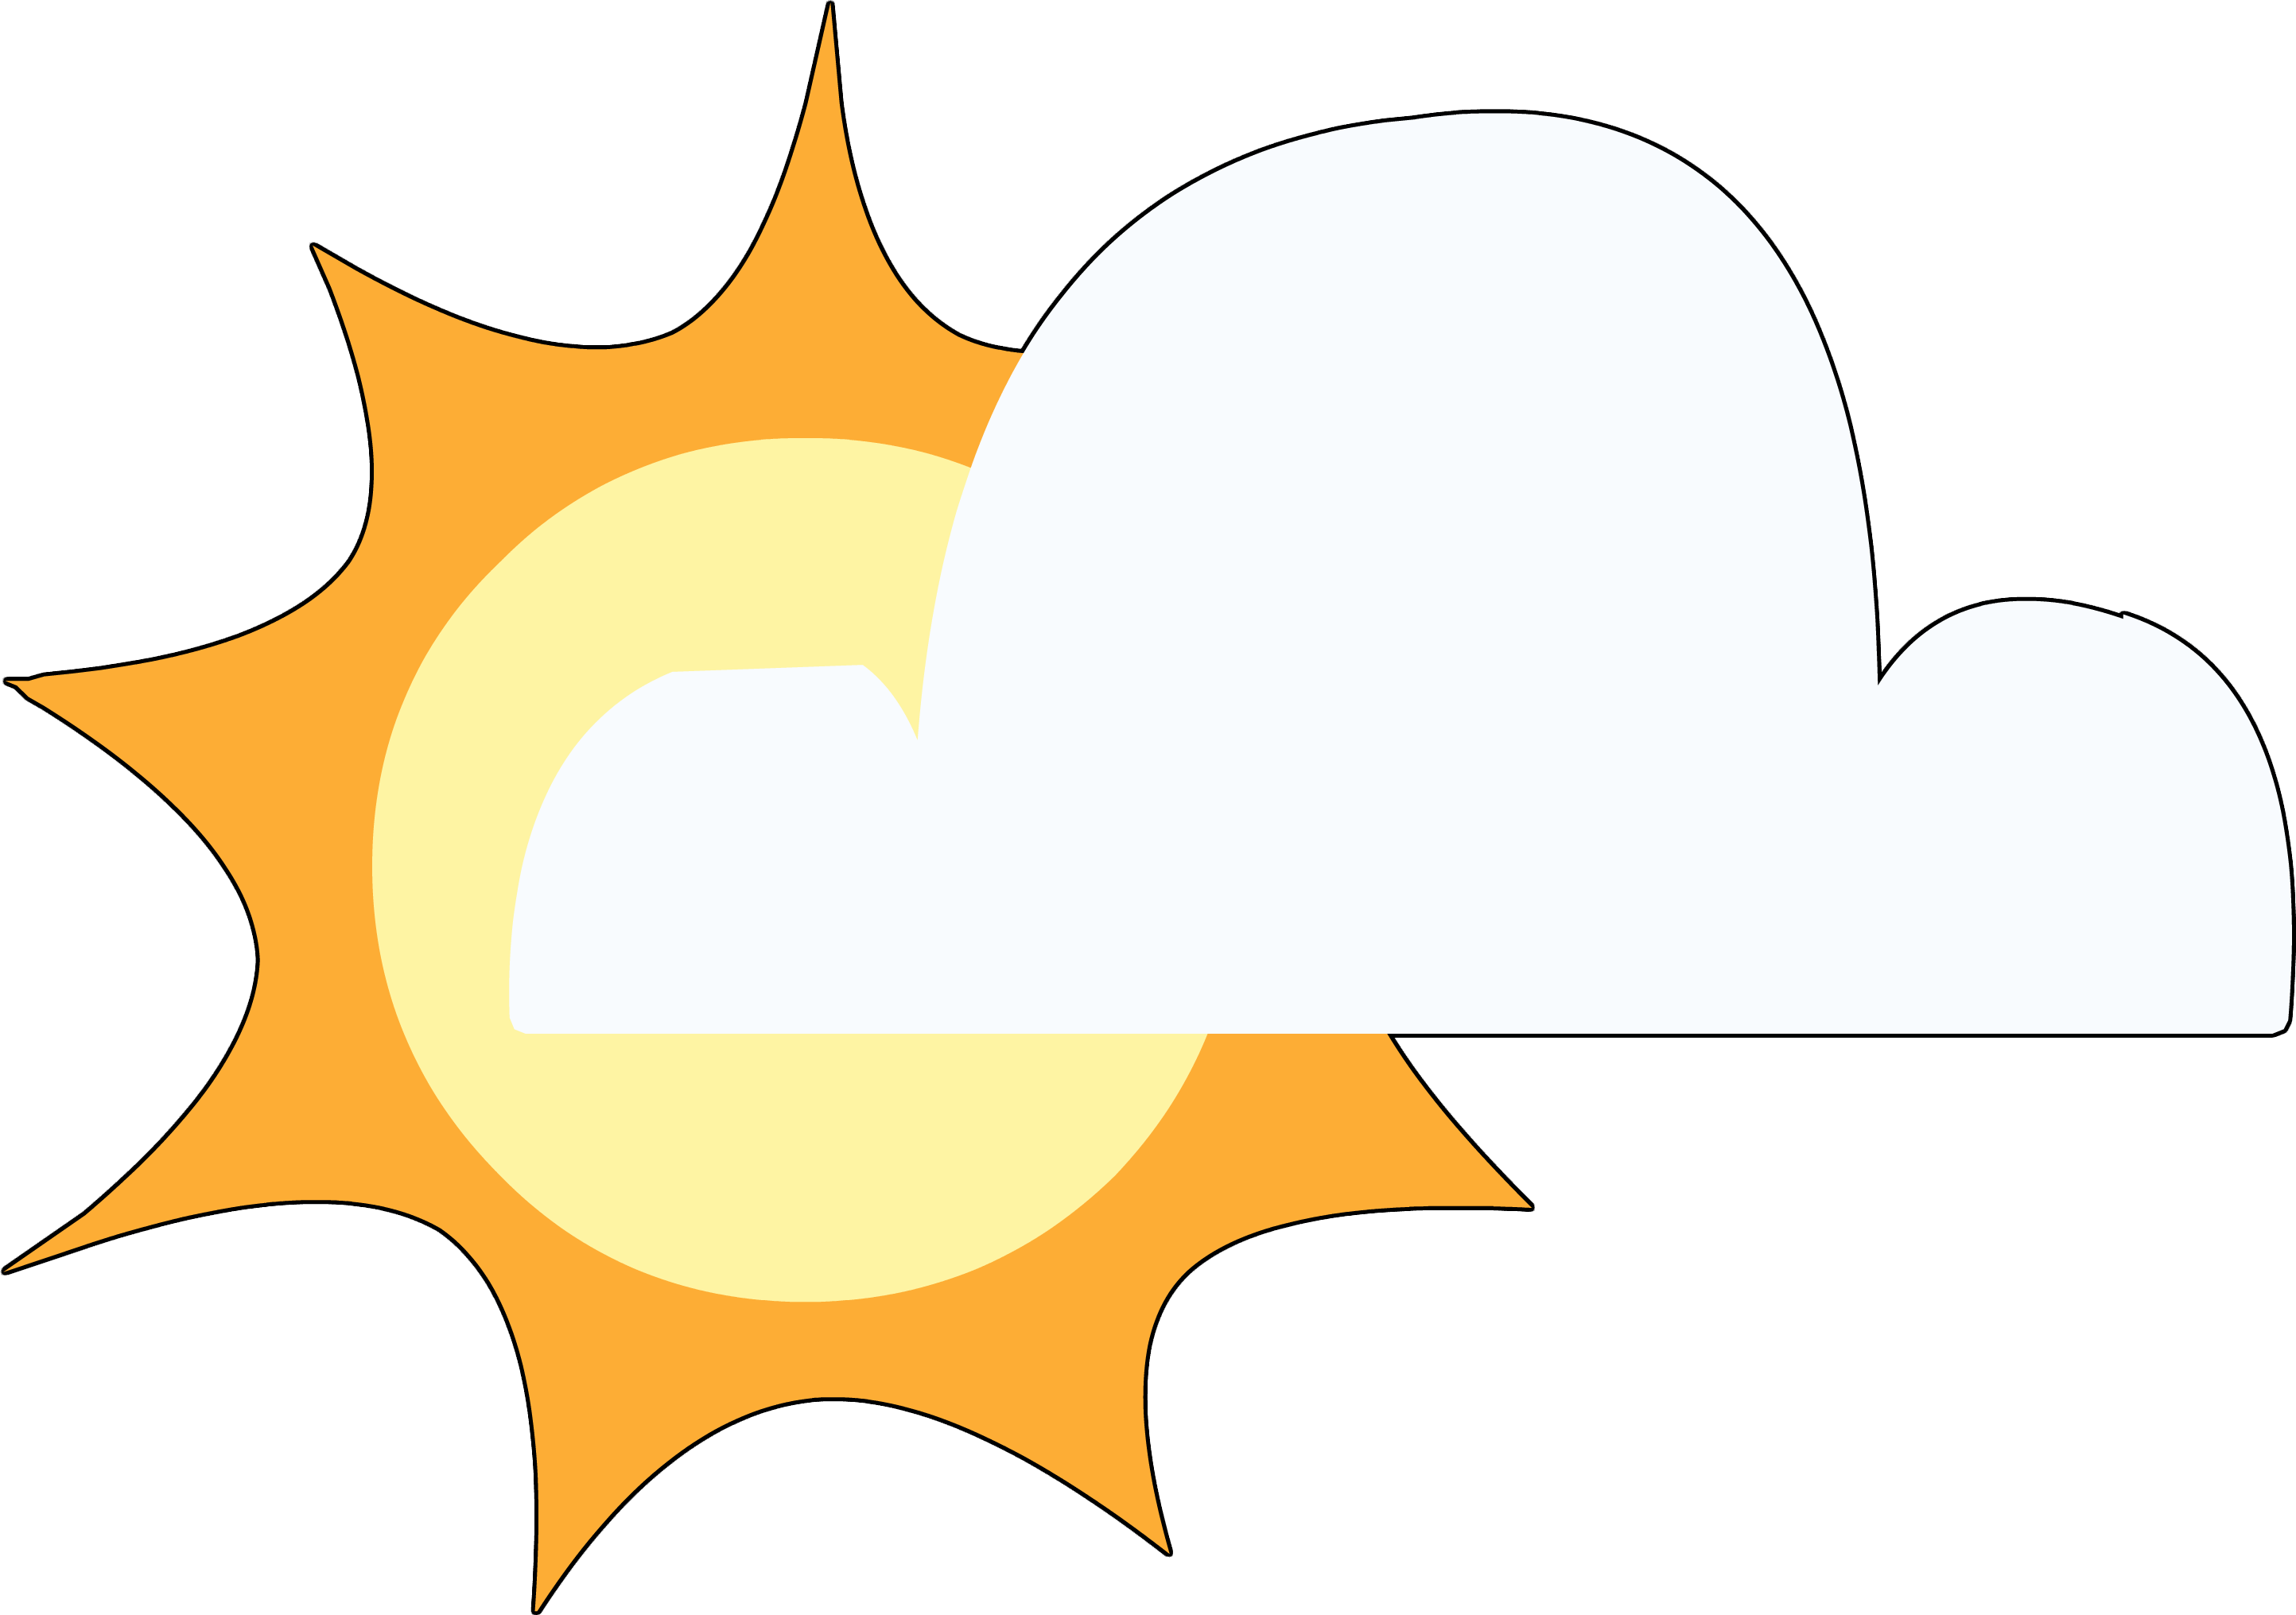 Cloudy clipart partly cloudy. Image ponymaker partlycloudy png